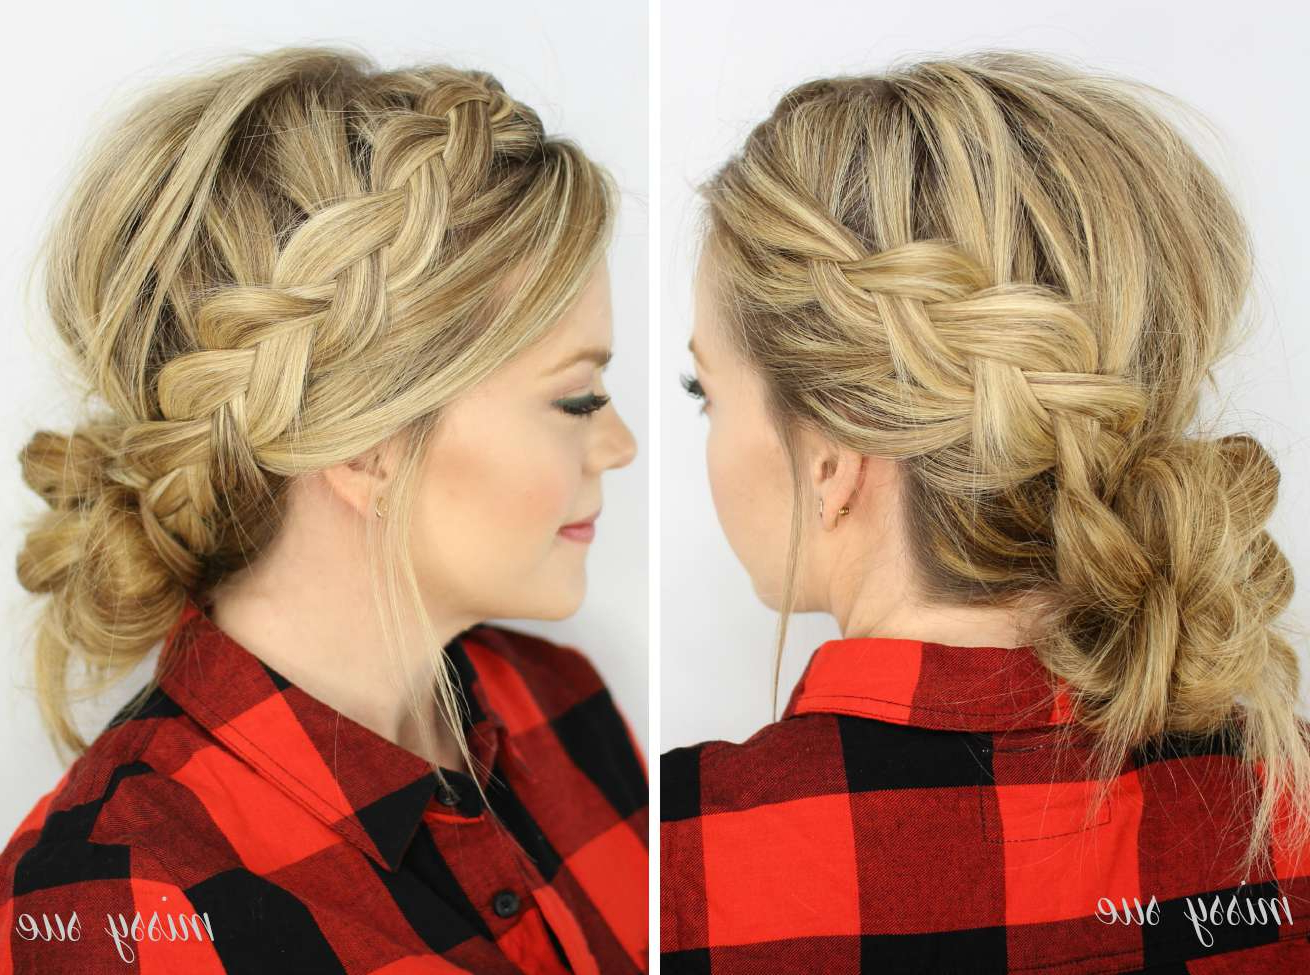 Most Recent Messy Mermaid Braid Hairstyles Within Braided Hairstyles For Weddings (View 14 of 20)